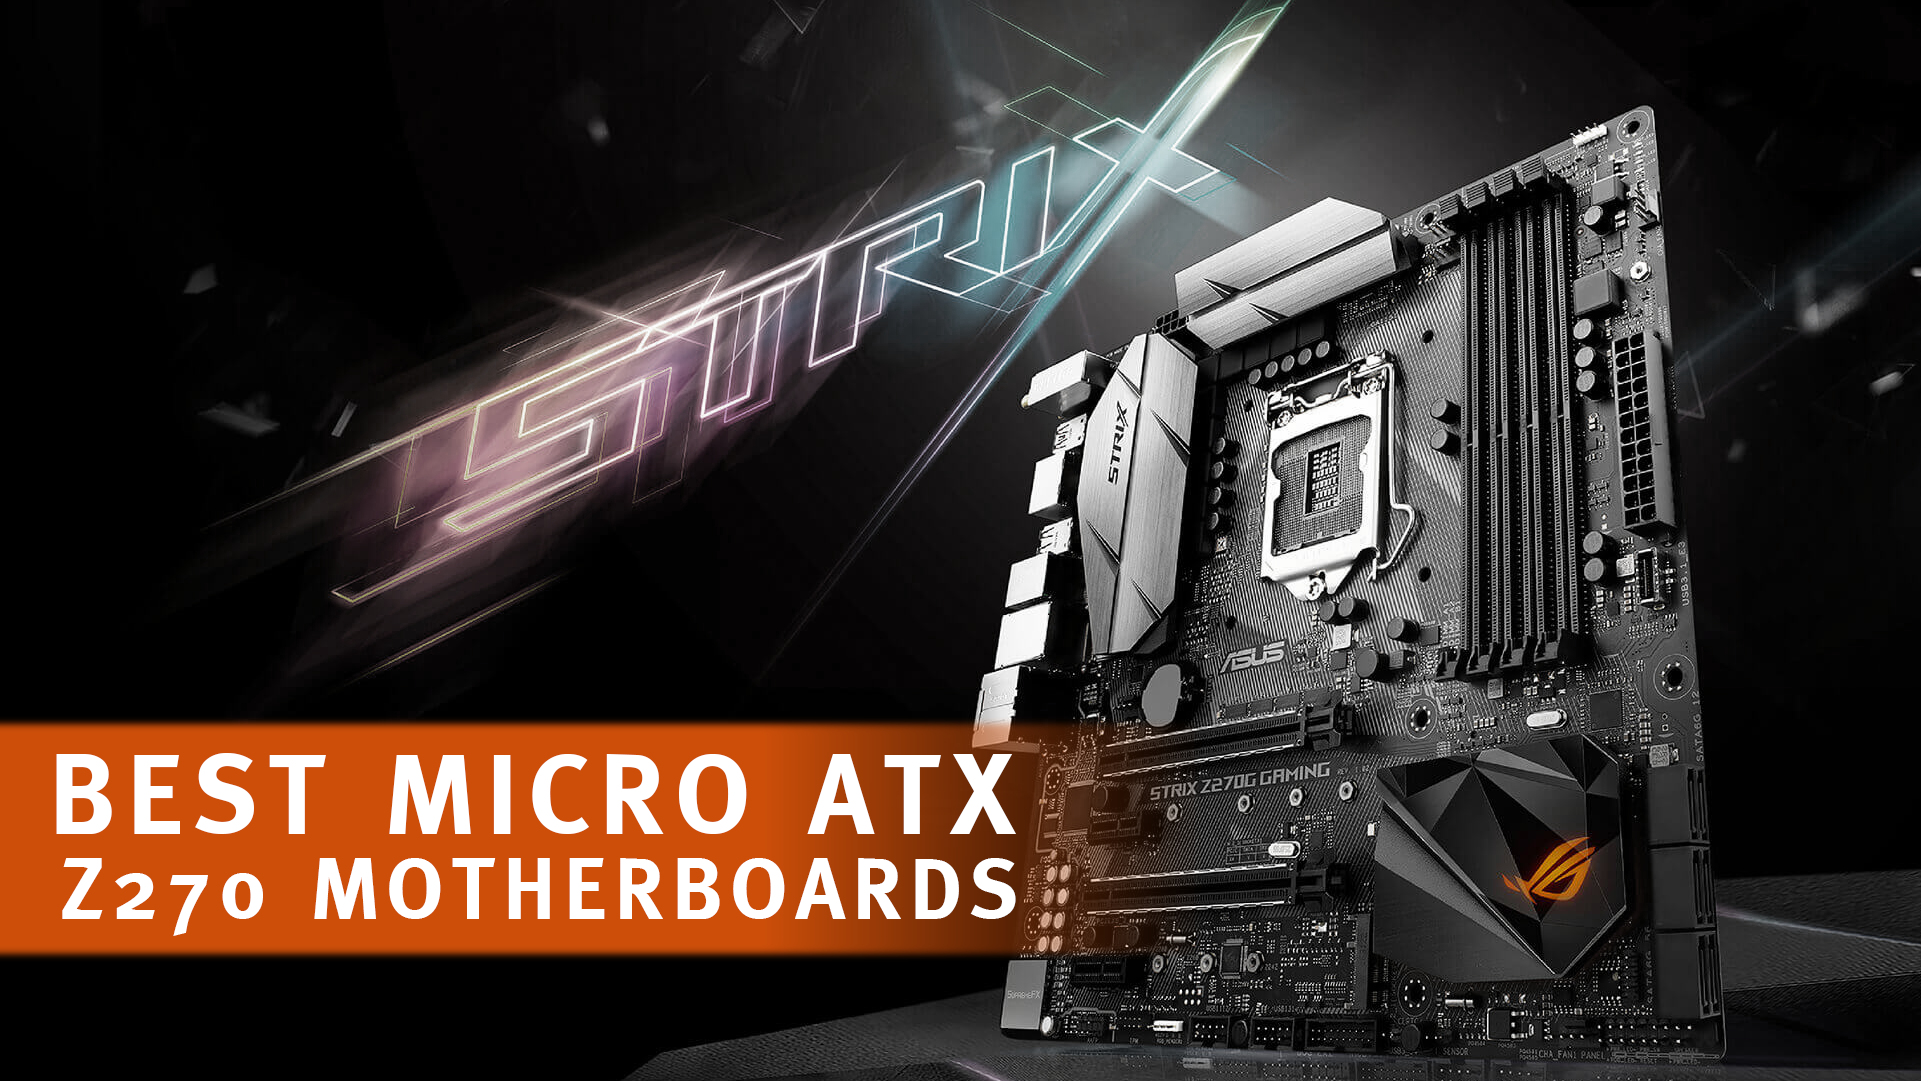 The Best Micro ATX Z270 Motherboards featured